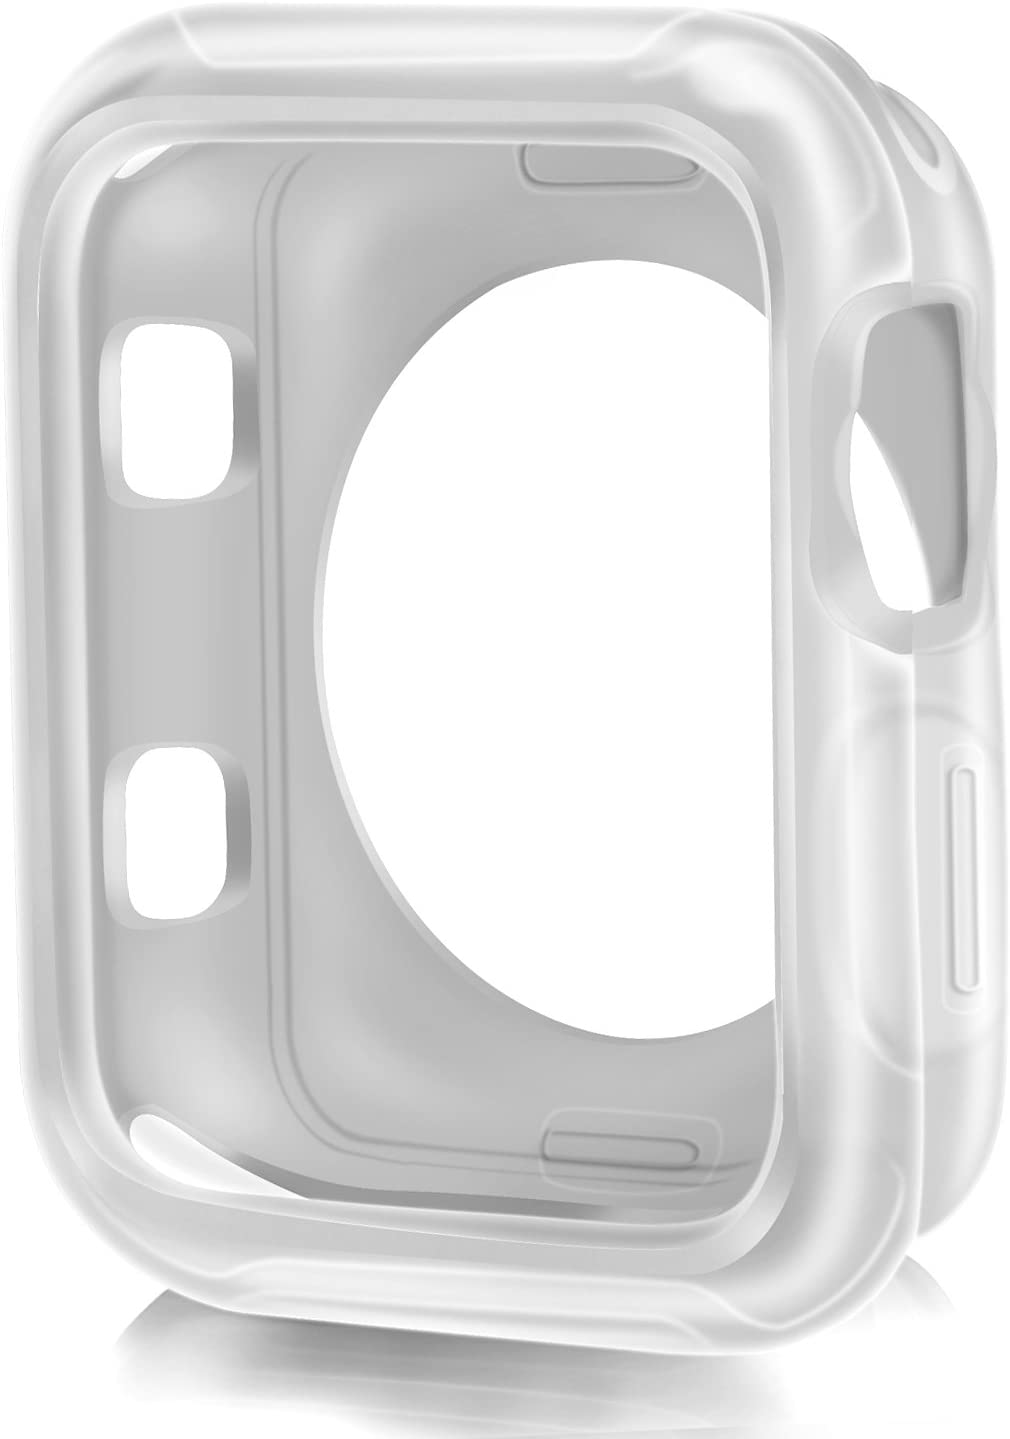 XinywTech Compatible Apple Watch Case 42mm,Shock-Proof and Shatter-Resistant Protector Bumper iwatch Case Compatible Apple Watch Series 3/2/1,Nike+,Sport,Edition (Clear, 42mm)